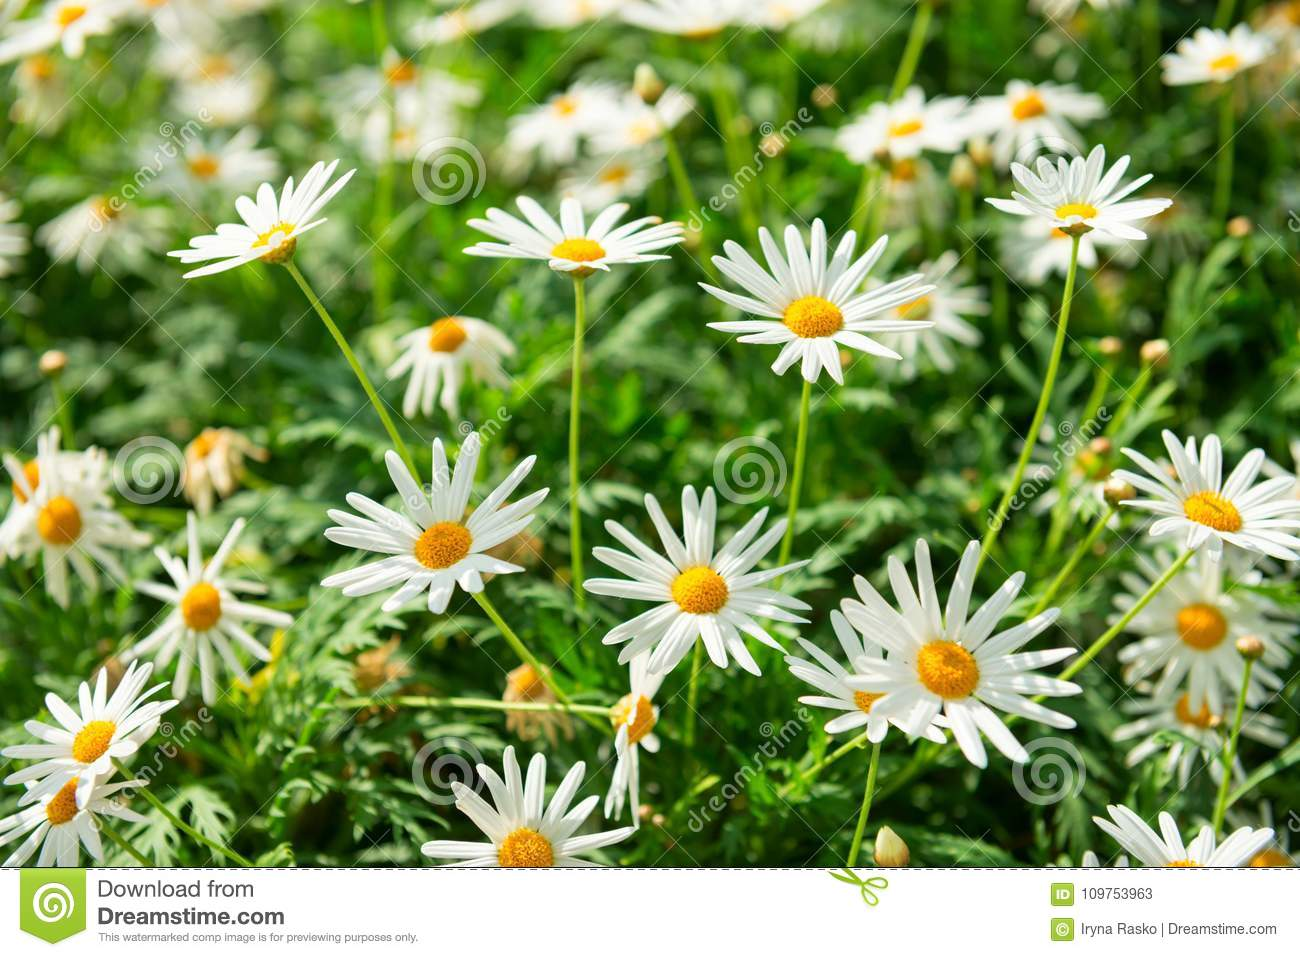 Green field with many white flowers